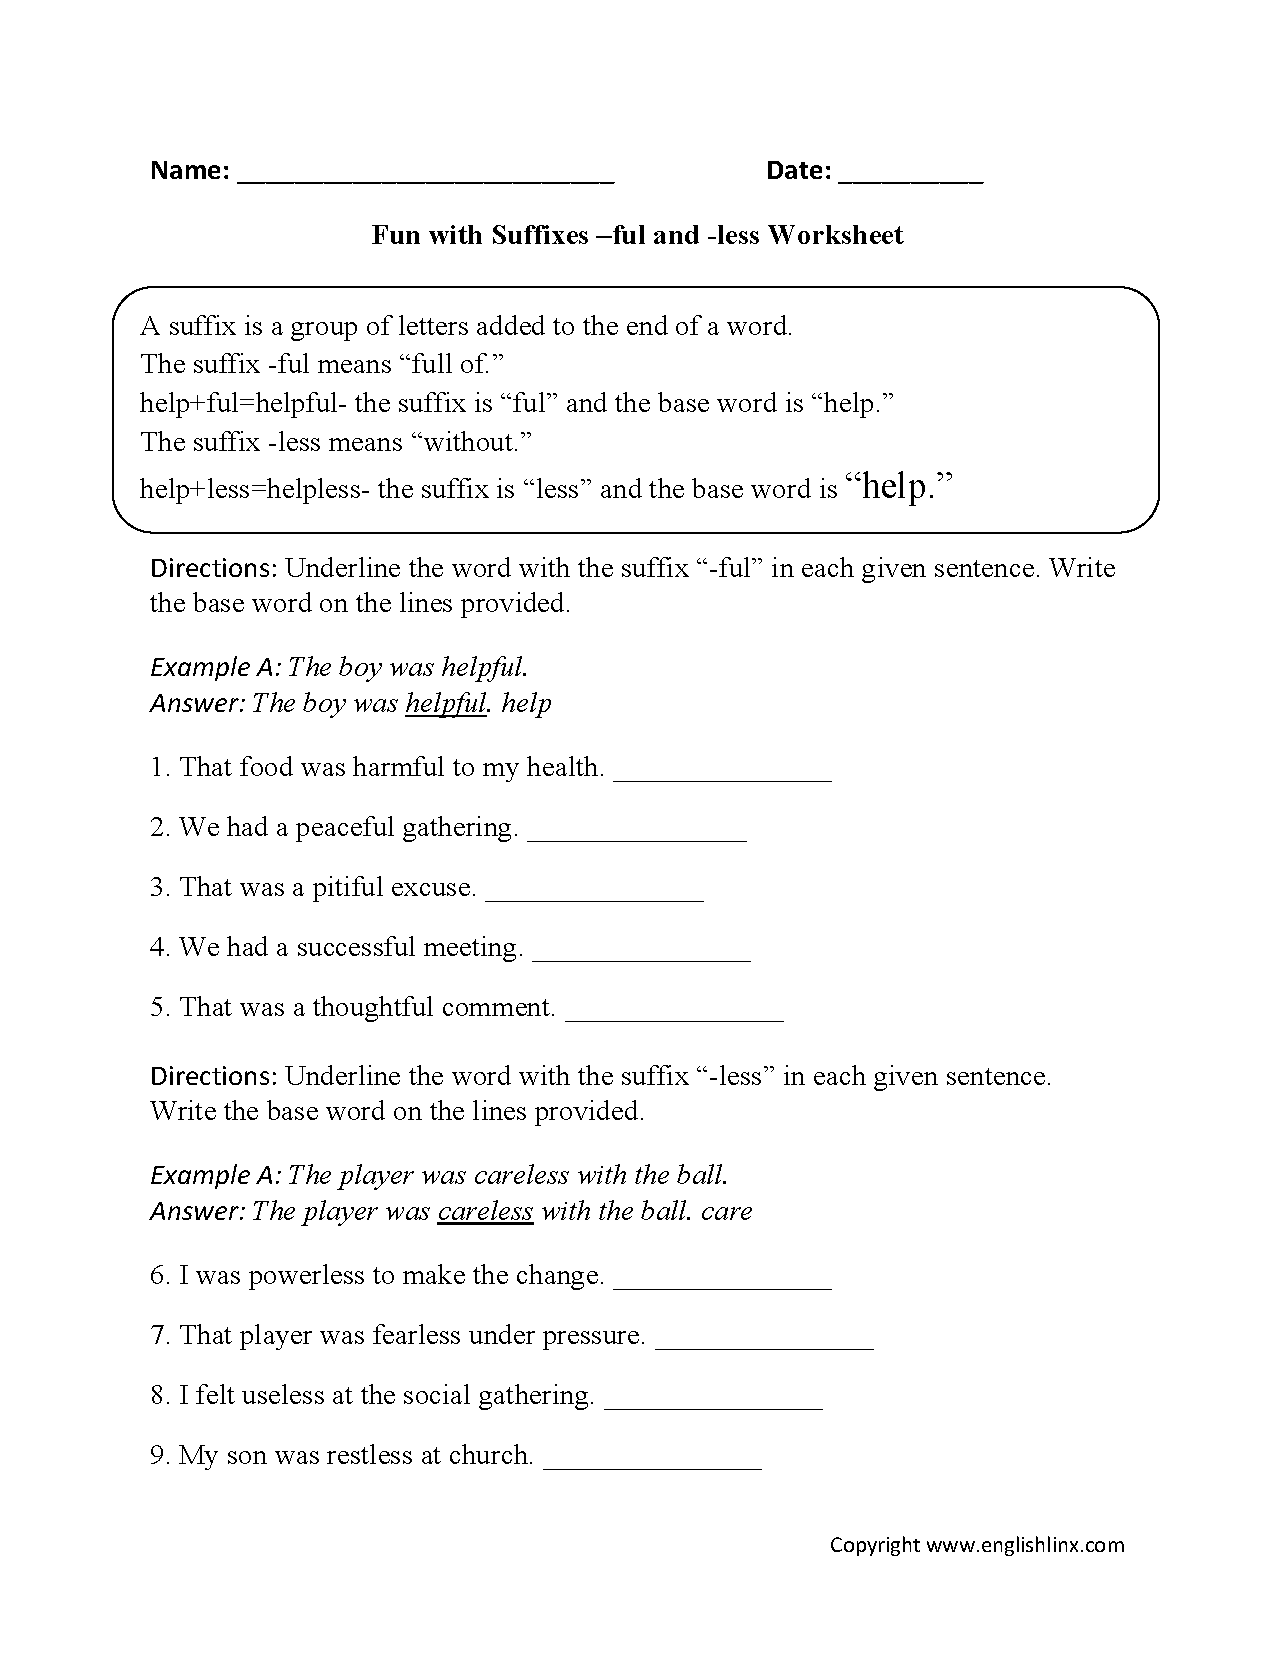 Worksheets Ged Social Studies Worksheets englishlinx com suffixes worksheets ful and less worksheets